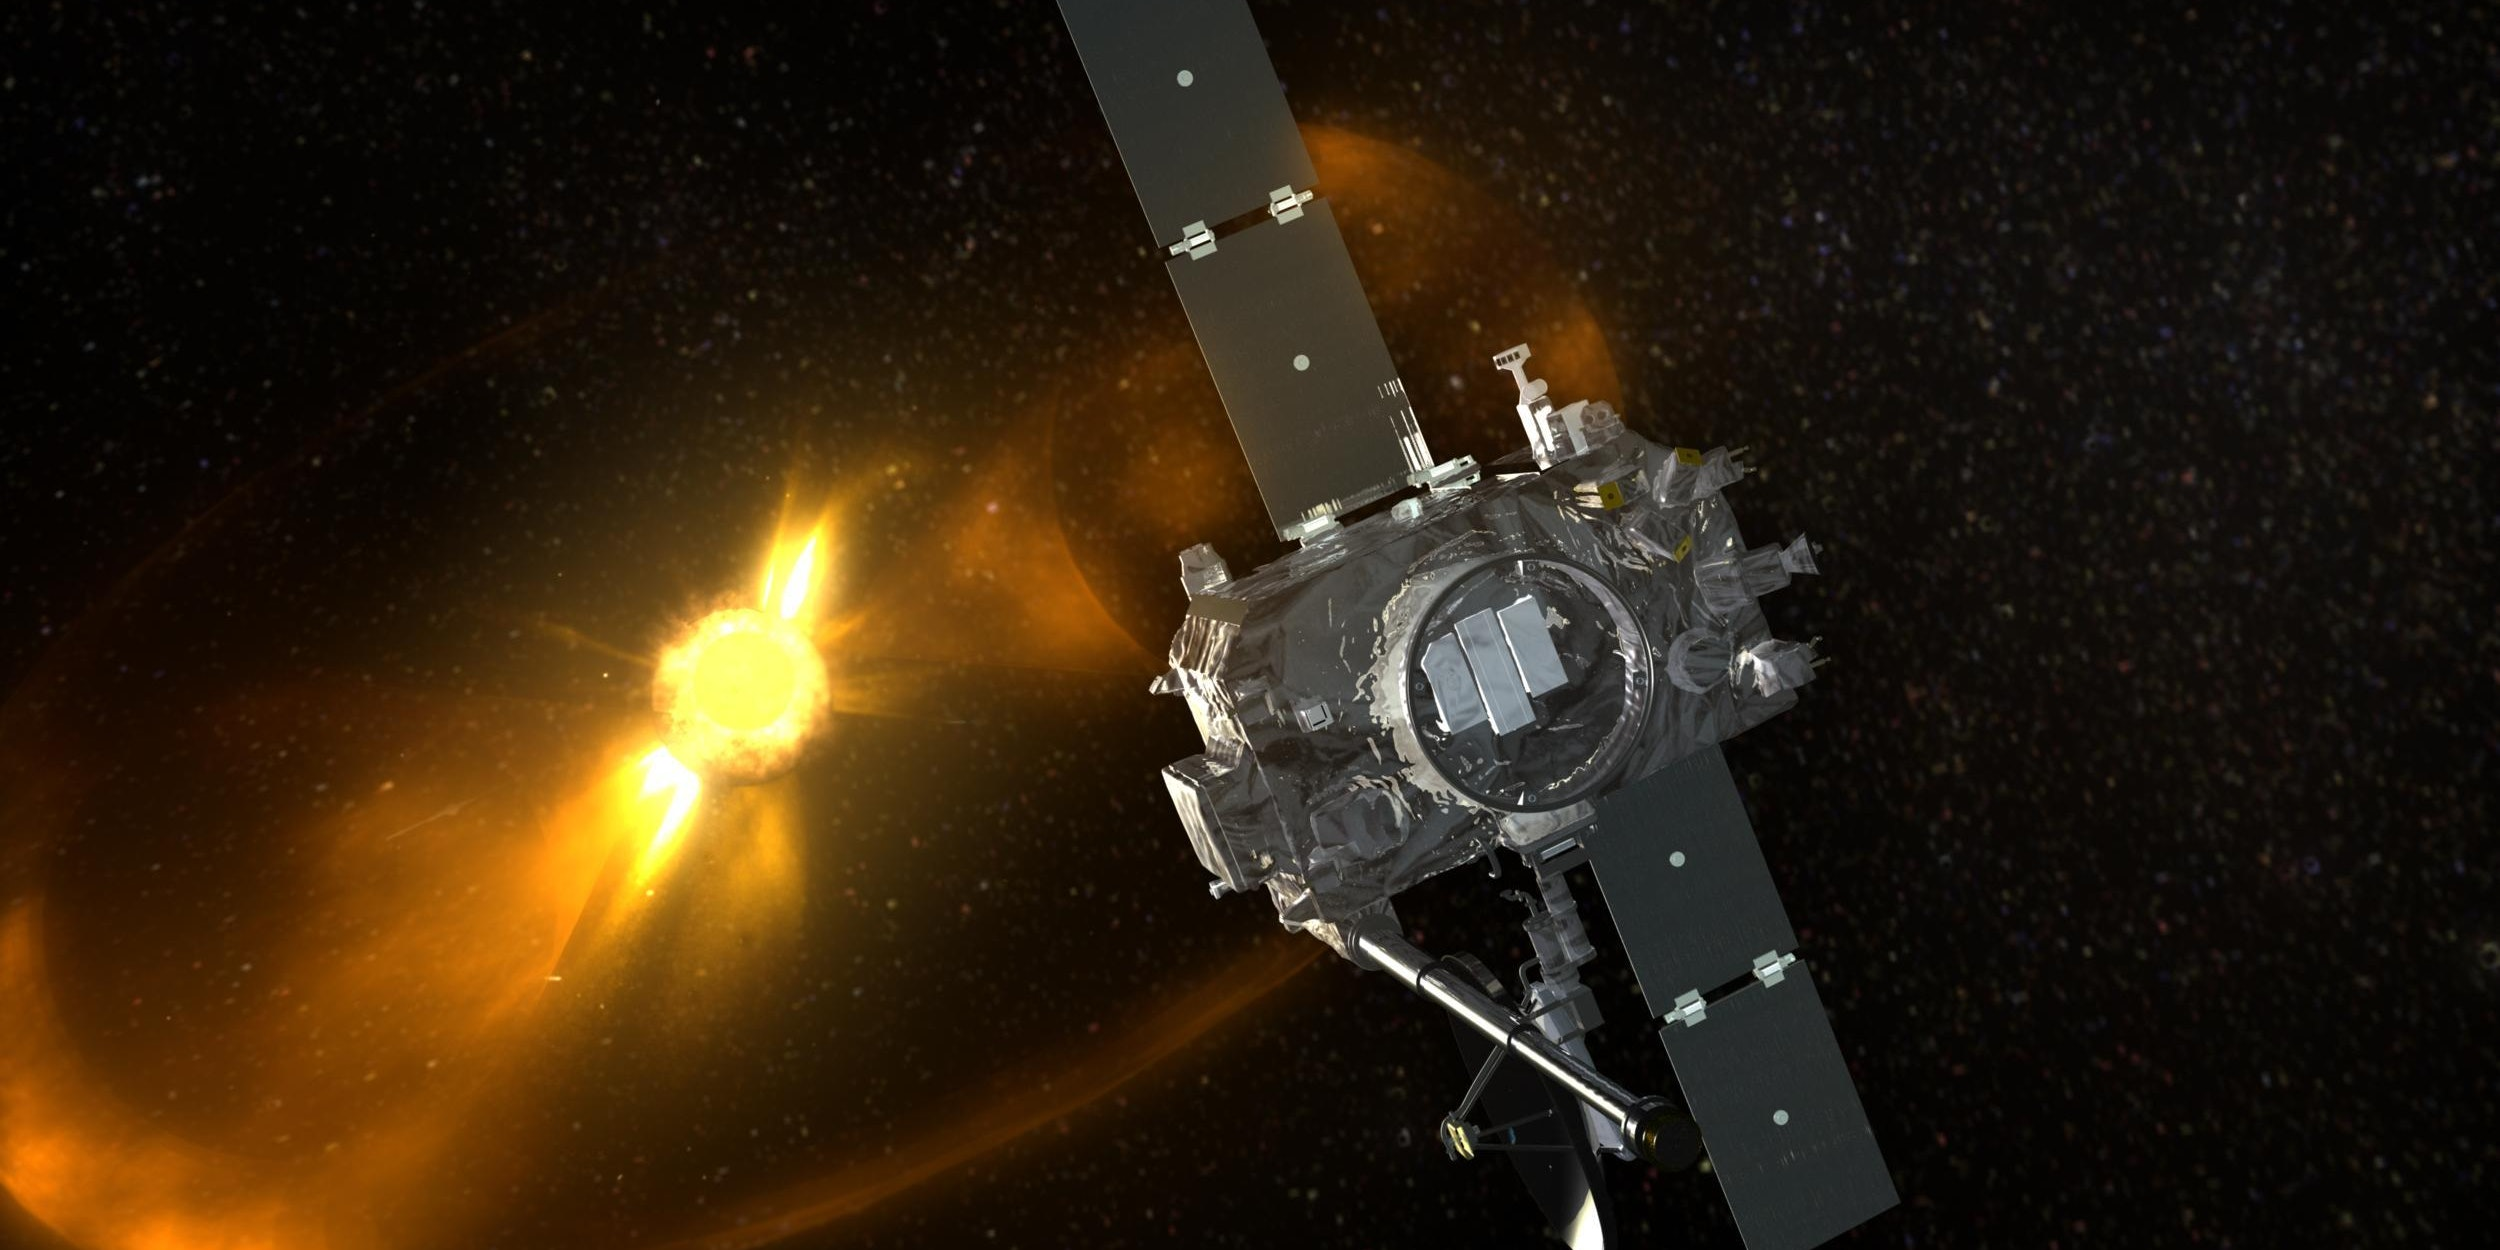 Artist's depiction of the STEREO spacecraft.